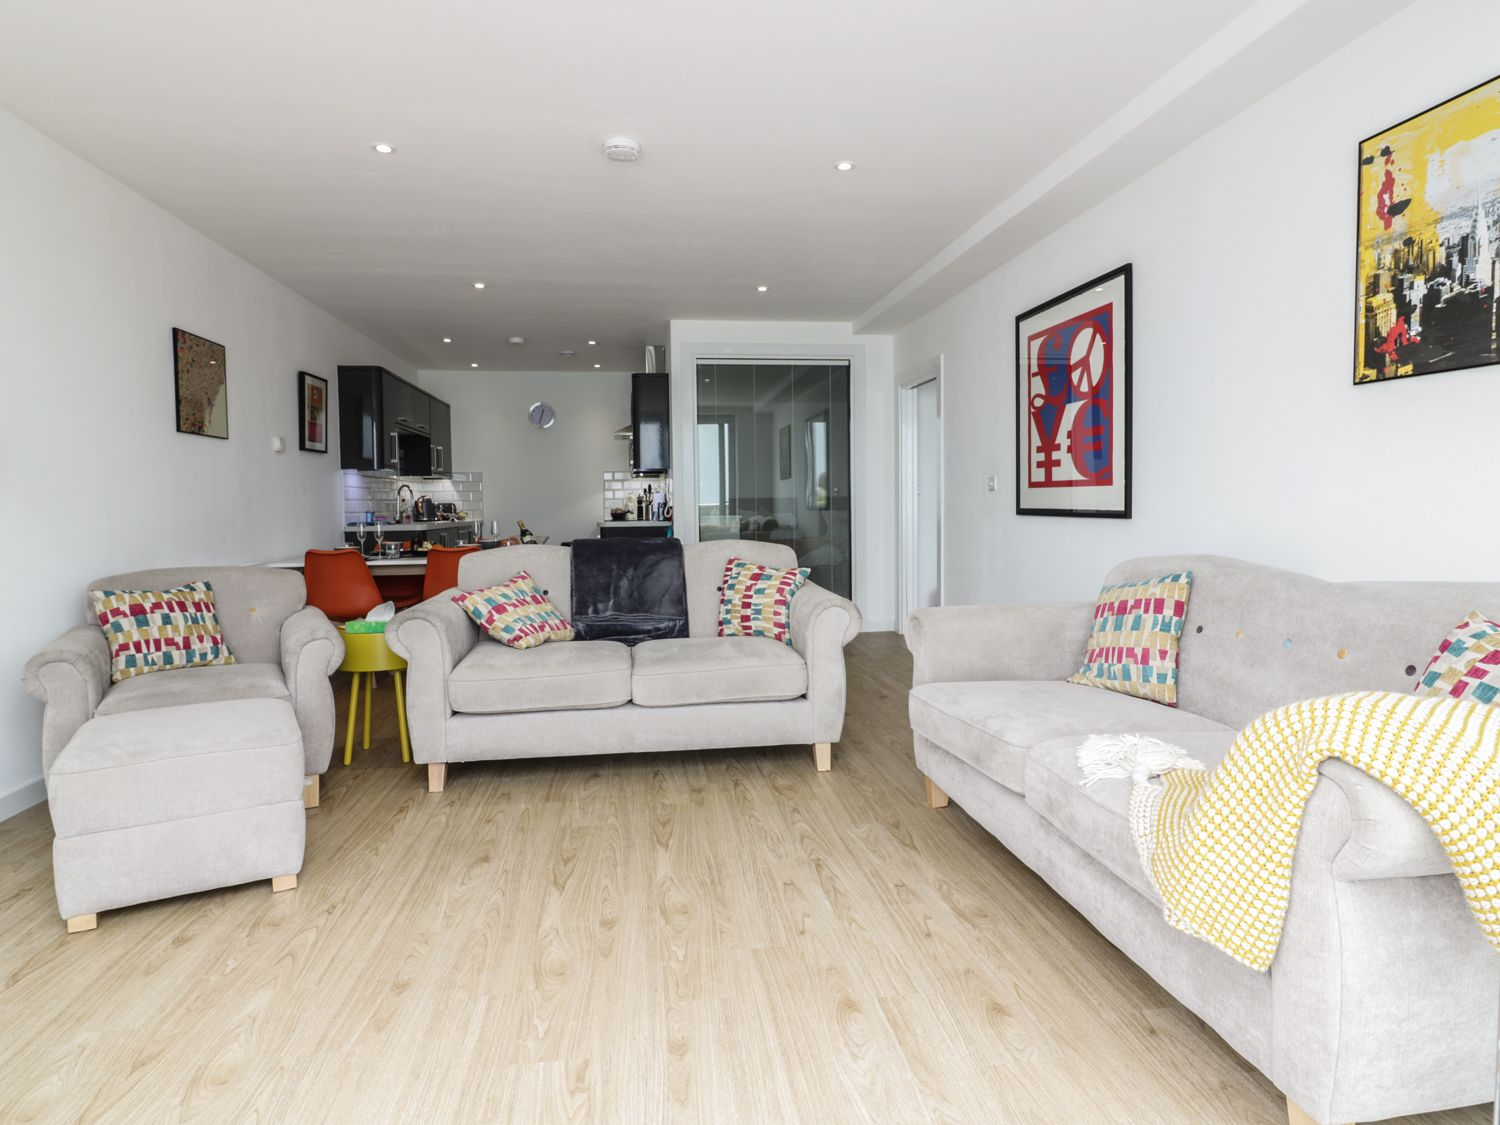 Buena Vista in Newquay - sleeps 4 people